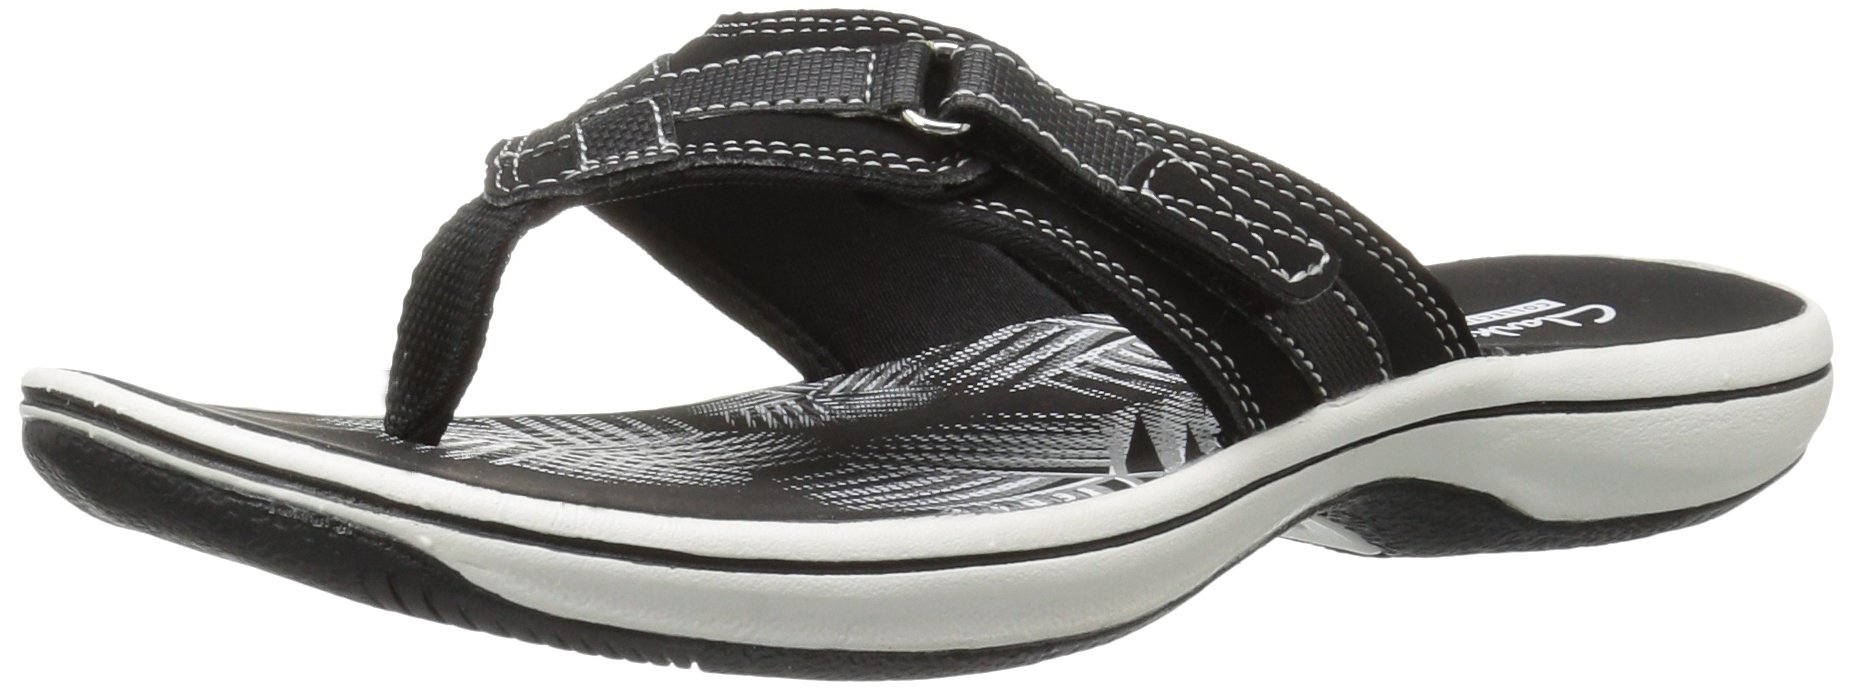 CLARKS Women's Breeze Sea Flip Flop, New Black Synthetic, 9 M US